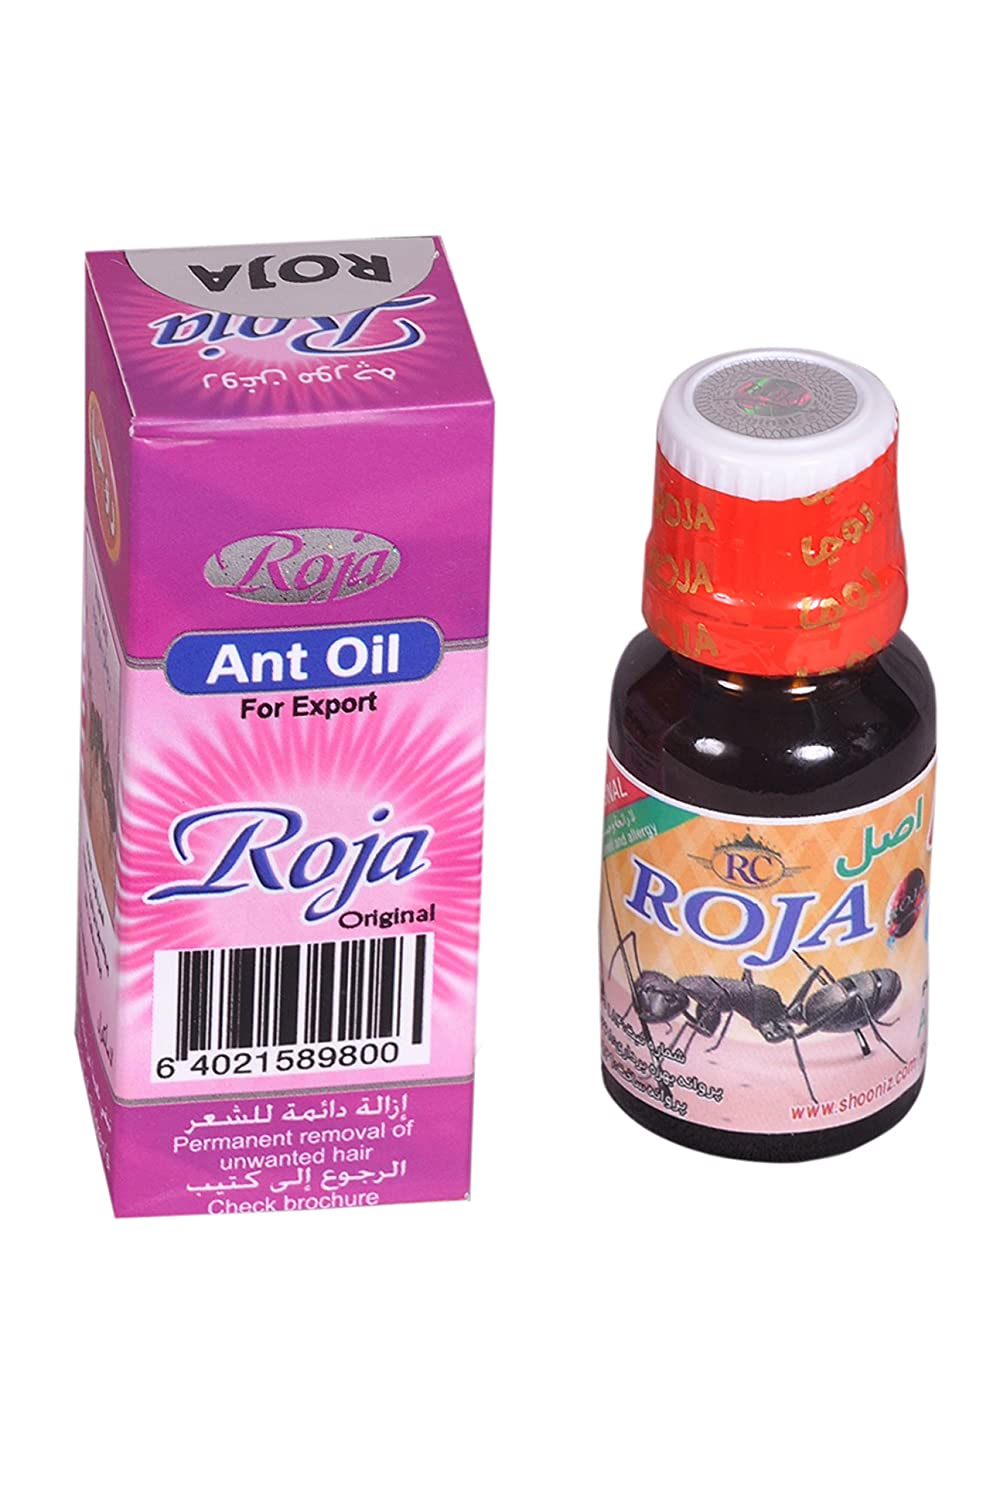 Roja Ant Egg Oil For Permanent Unwanted Hair Removal - 20Ml